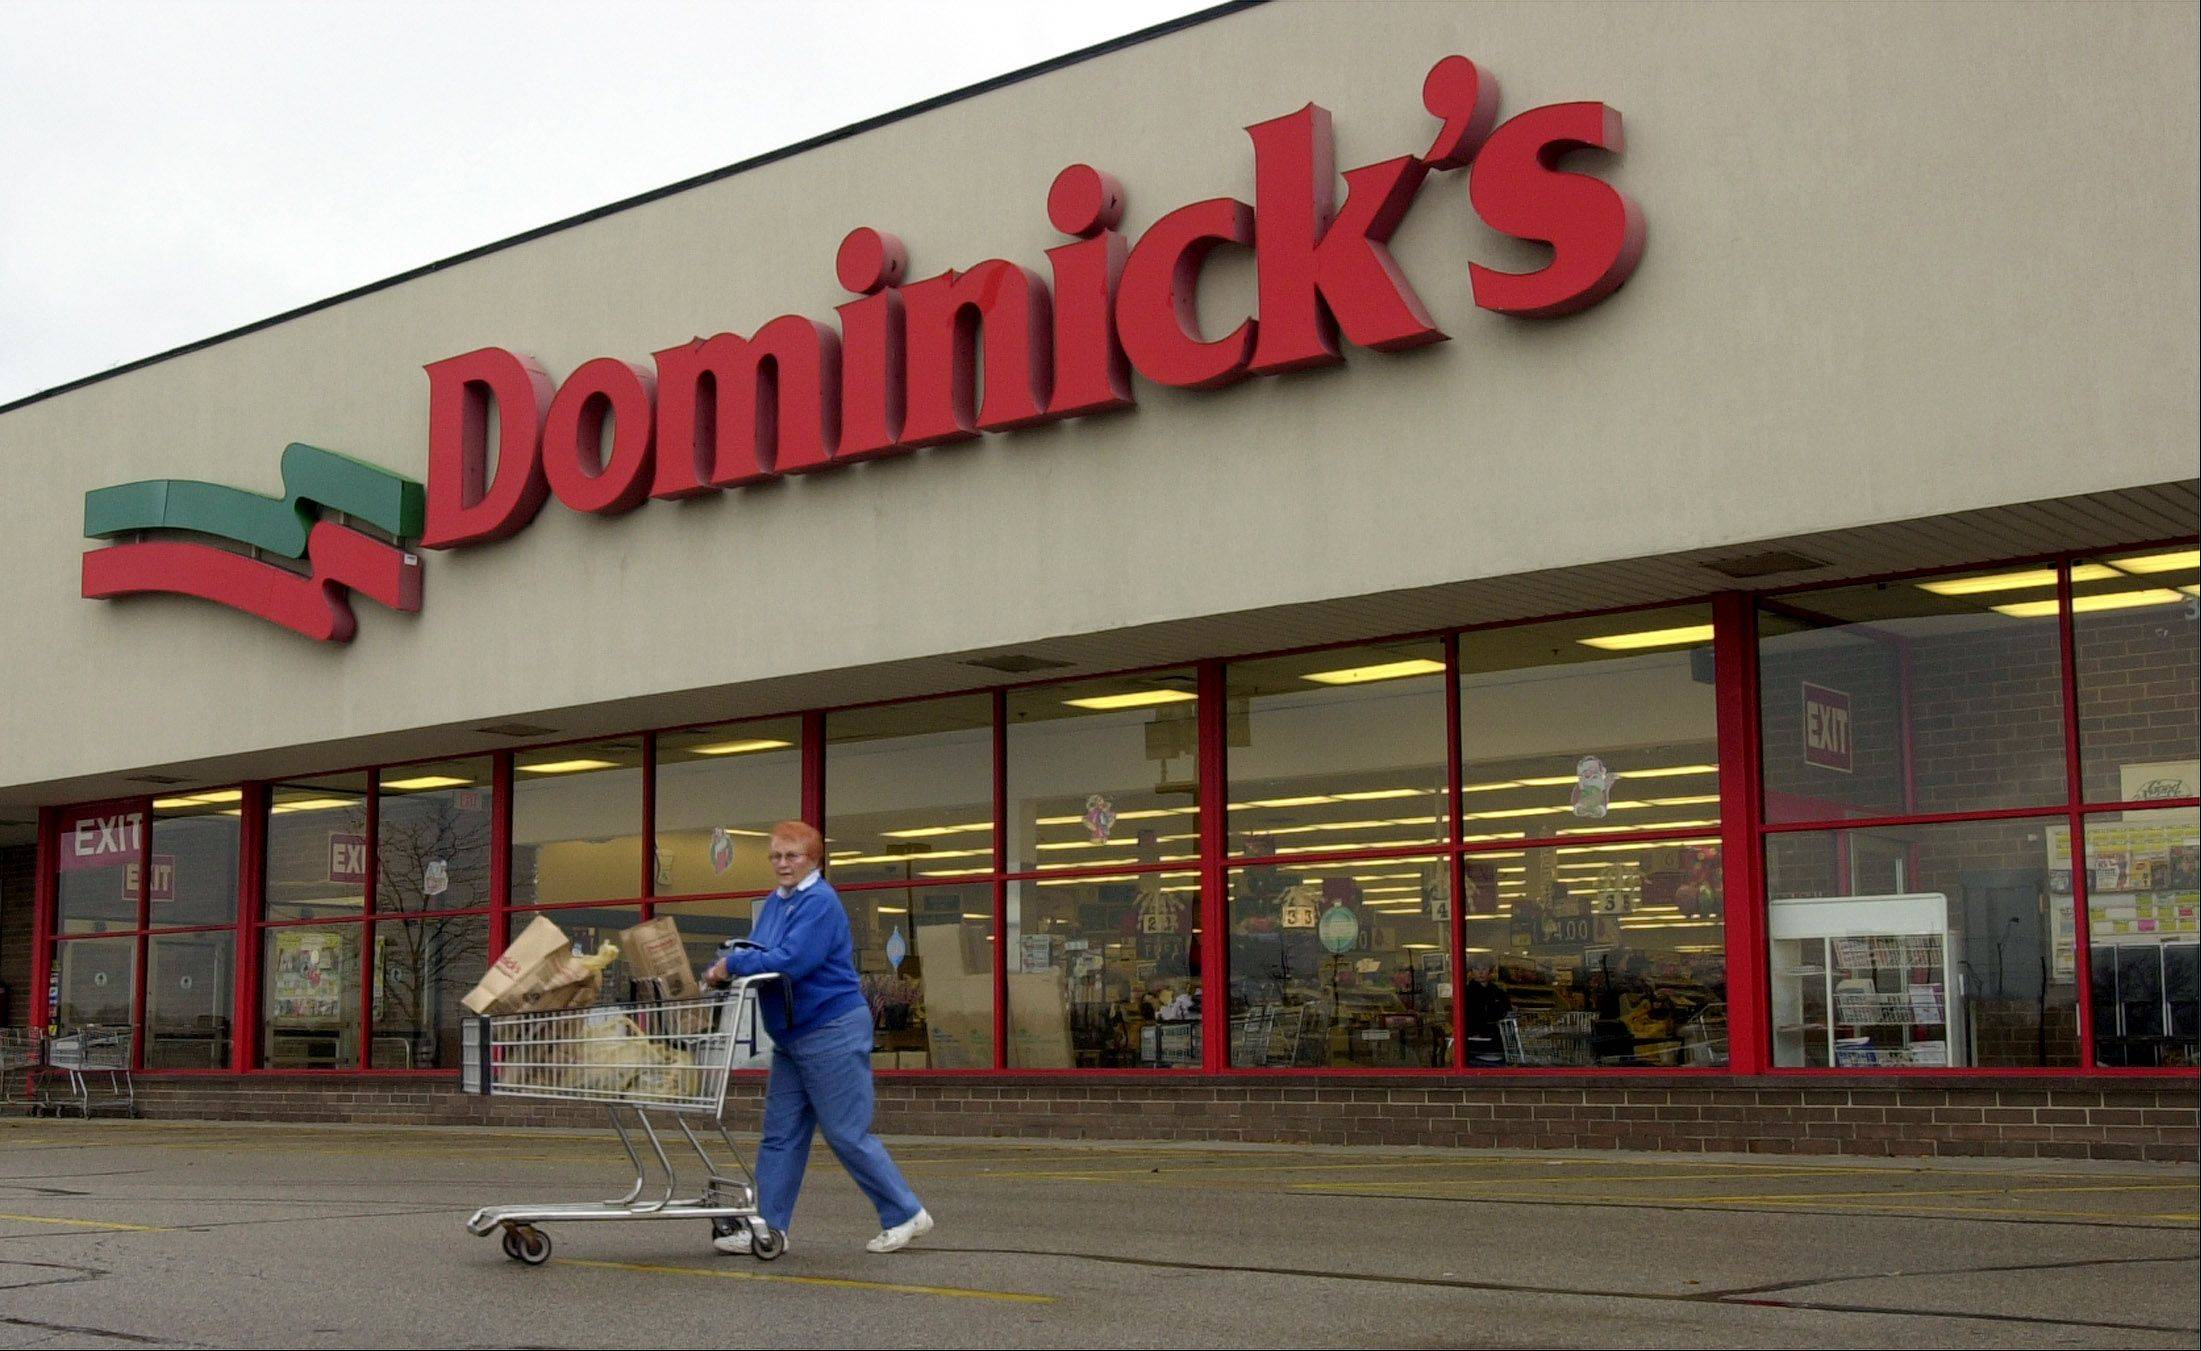 The former Dominick's at 325 E. Palatine Road in Arlington Heights will become a Joe Caputo & Sons Fruit Market, company officials announced. It's one of four suburban Dominick's being taken over by Caputo. The others are in Des Plaines, Elk Grove Village and Northbrook.